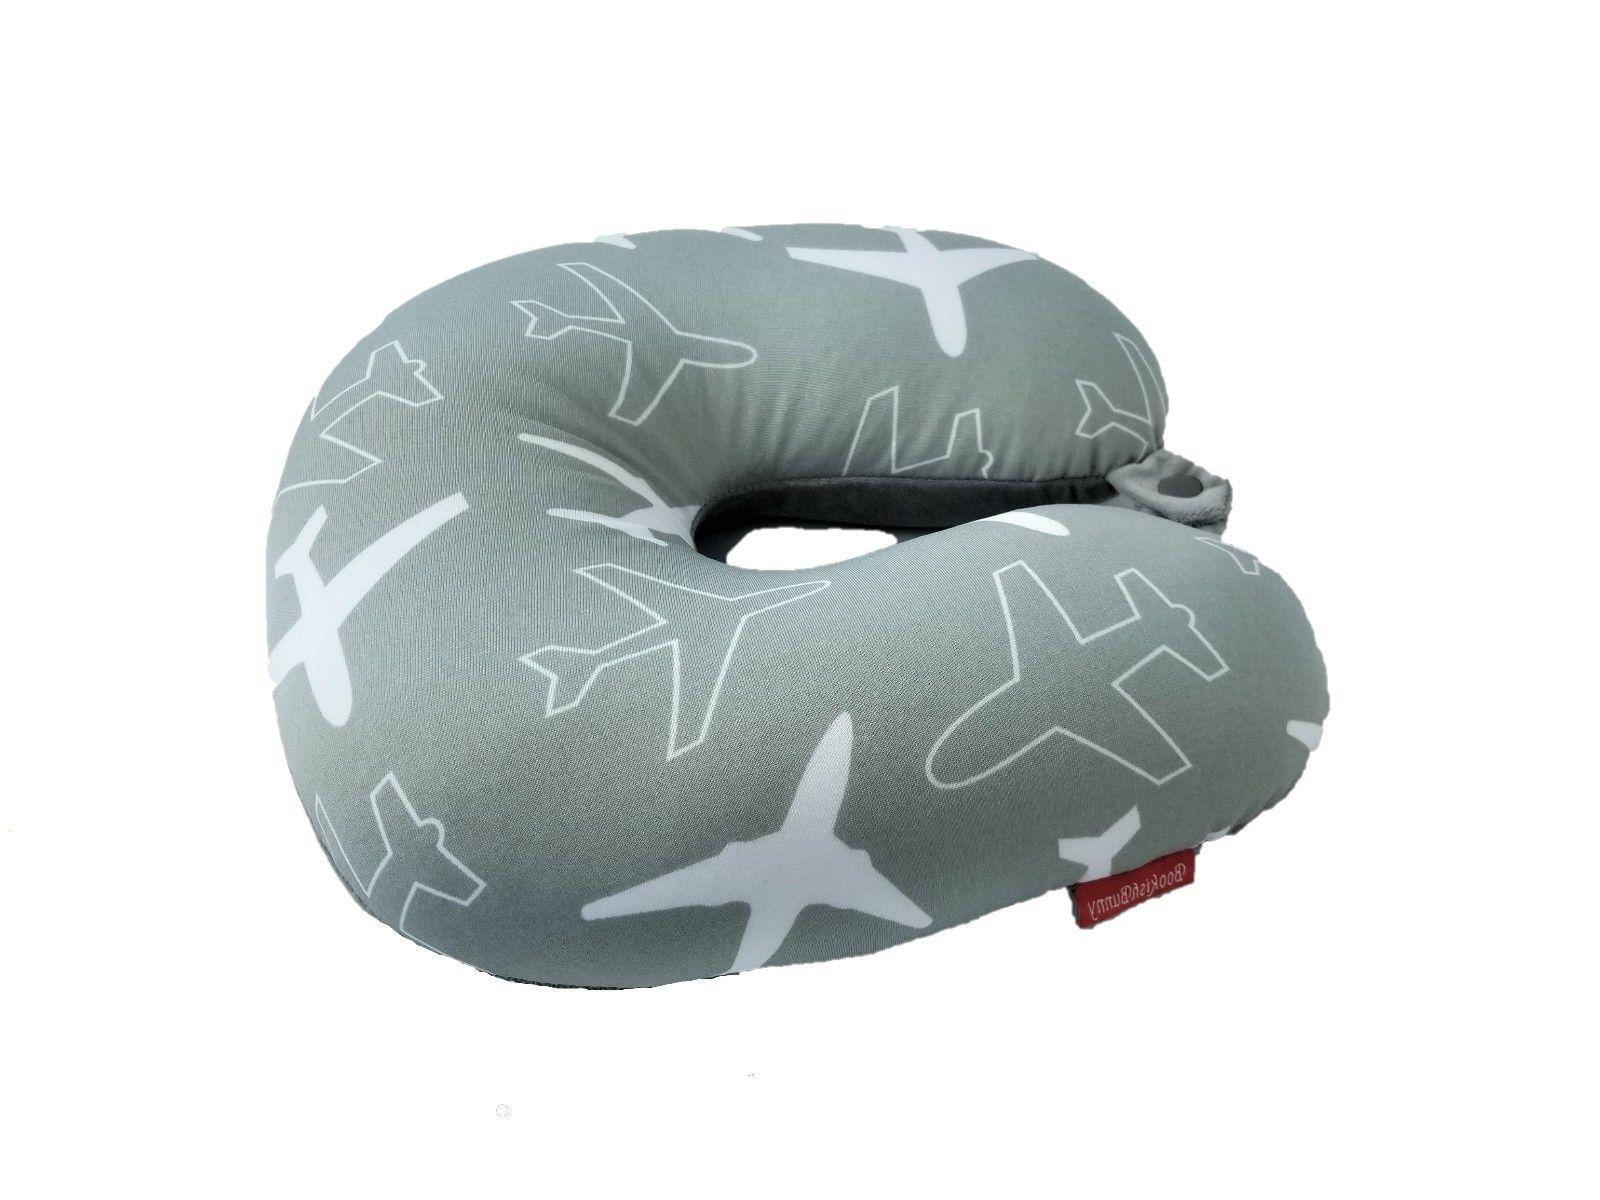 New 2018 U Micro-Bead Travel Pillow Neck Support Gray